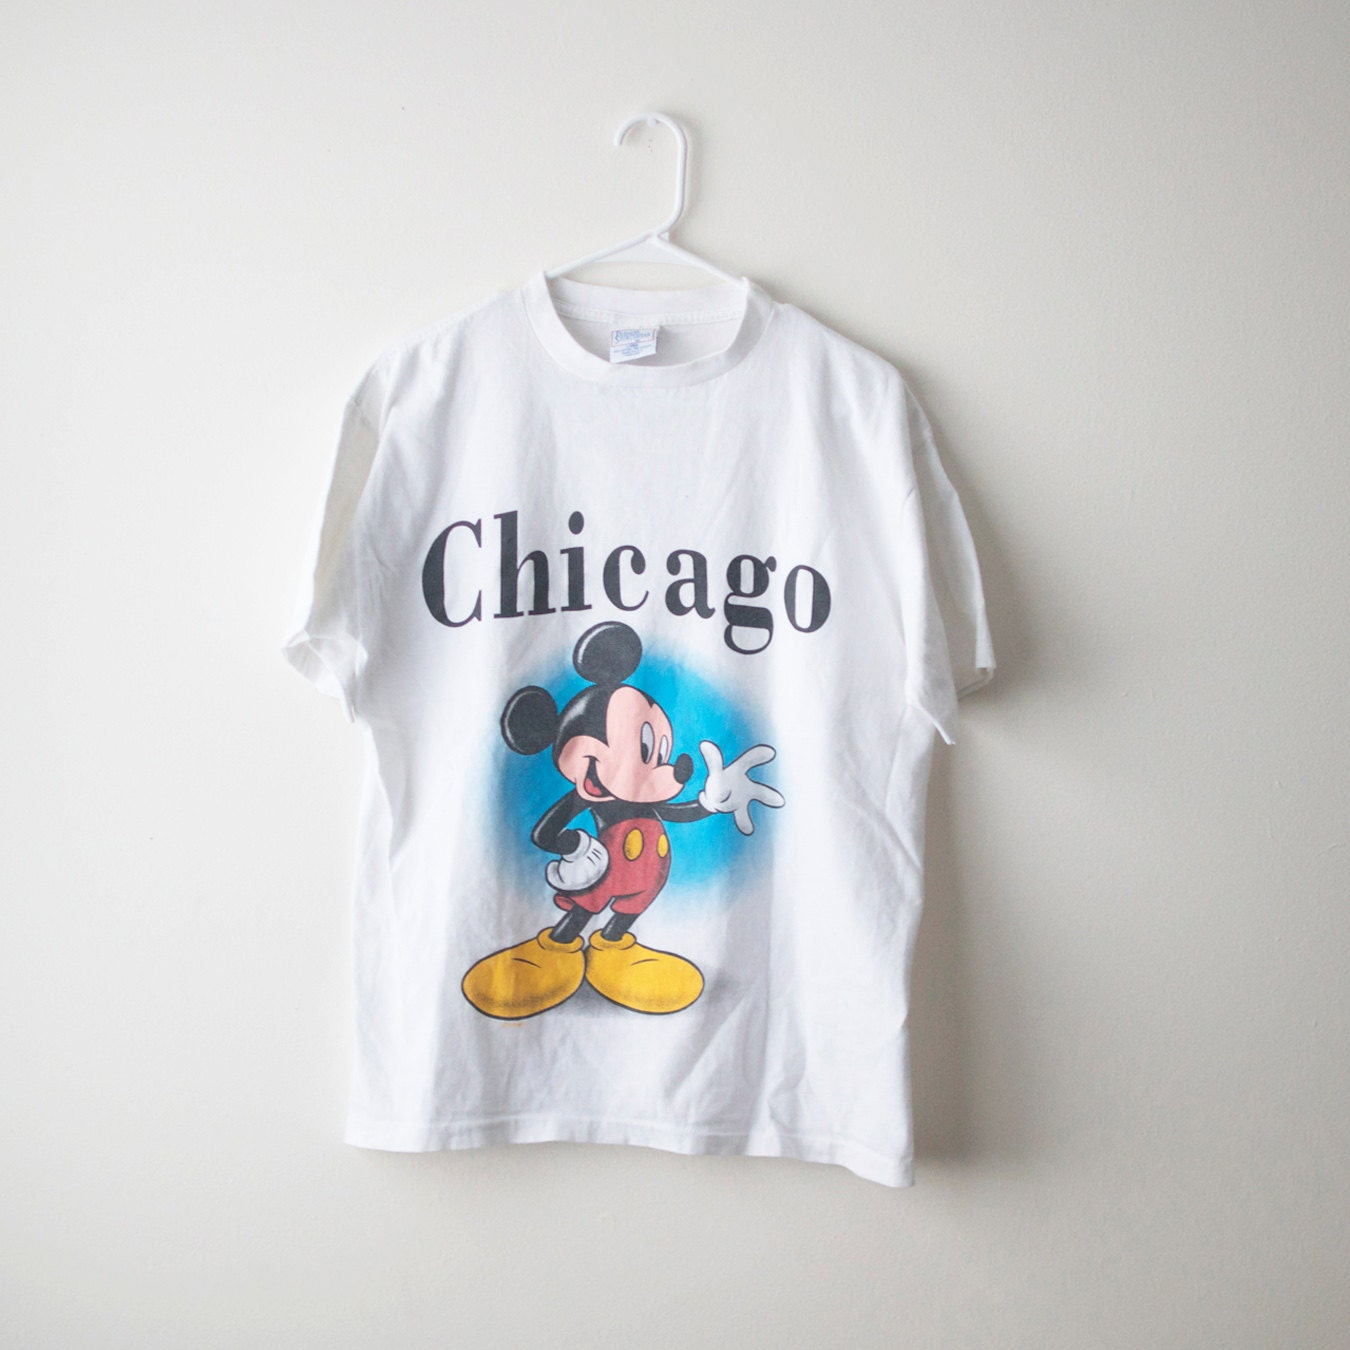 retro mickey mouse chicago t shirt. Black Bedroom Furniture Sets. Home Design Ideas